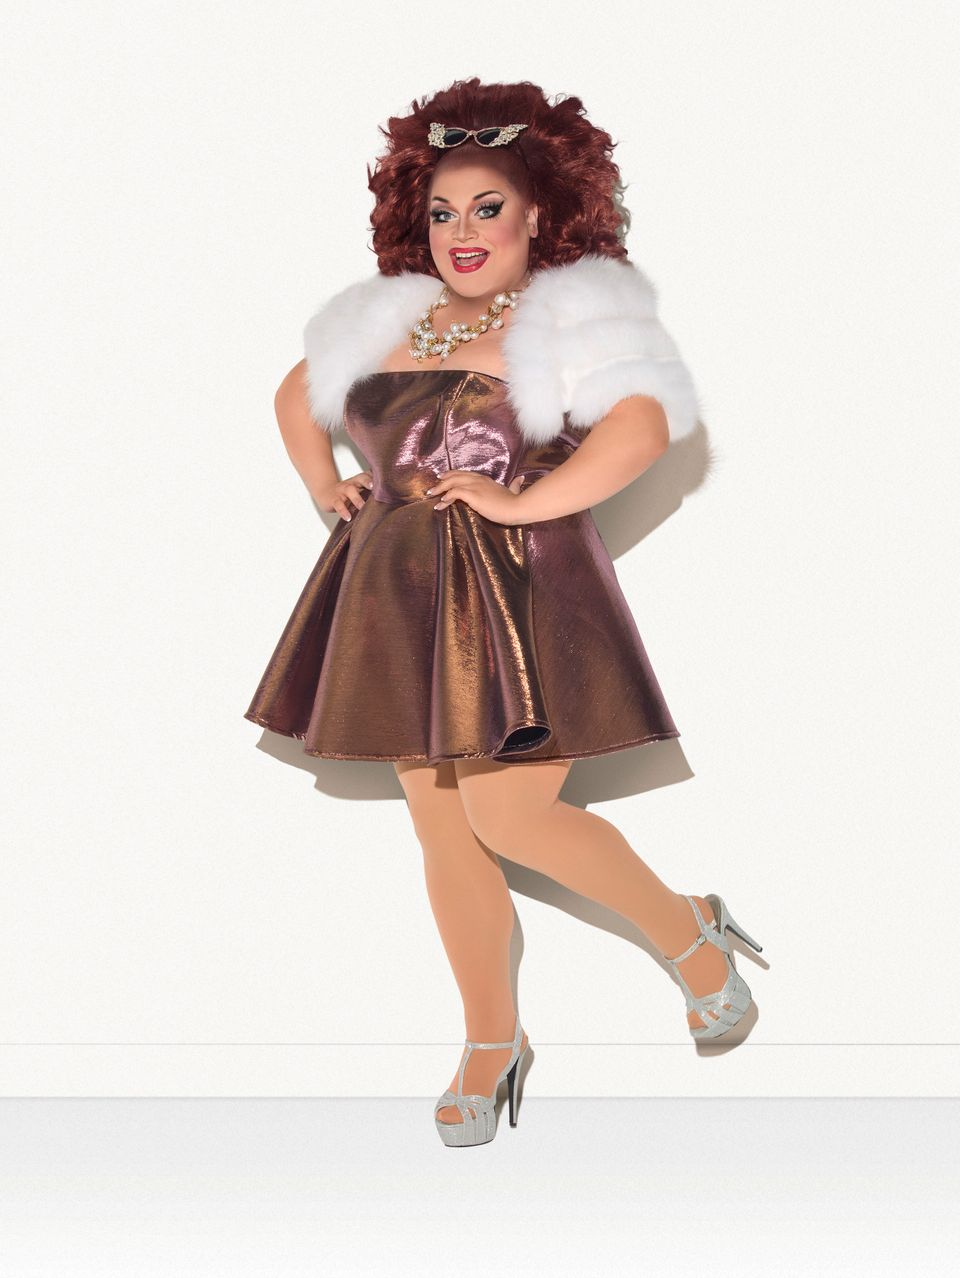 Orlando, FL <br><br><strong>Twitter</strong>: @gingerminj <br><br><strong>Instagram</strong>: @gingerminj